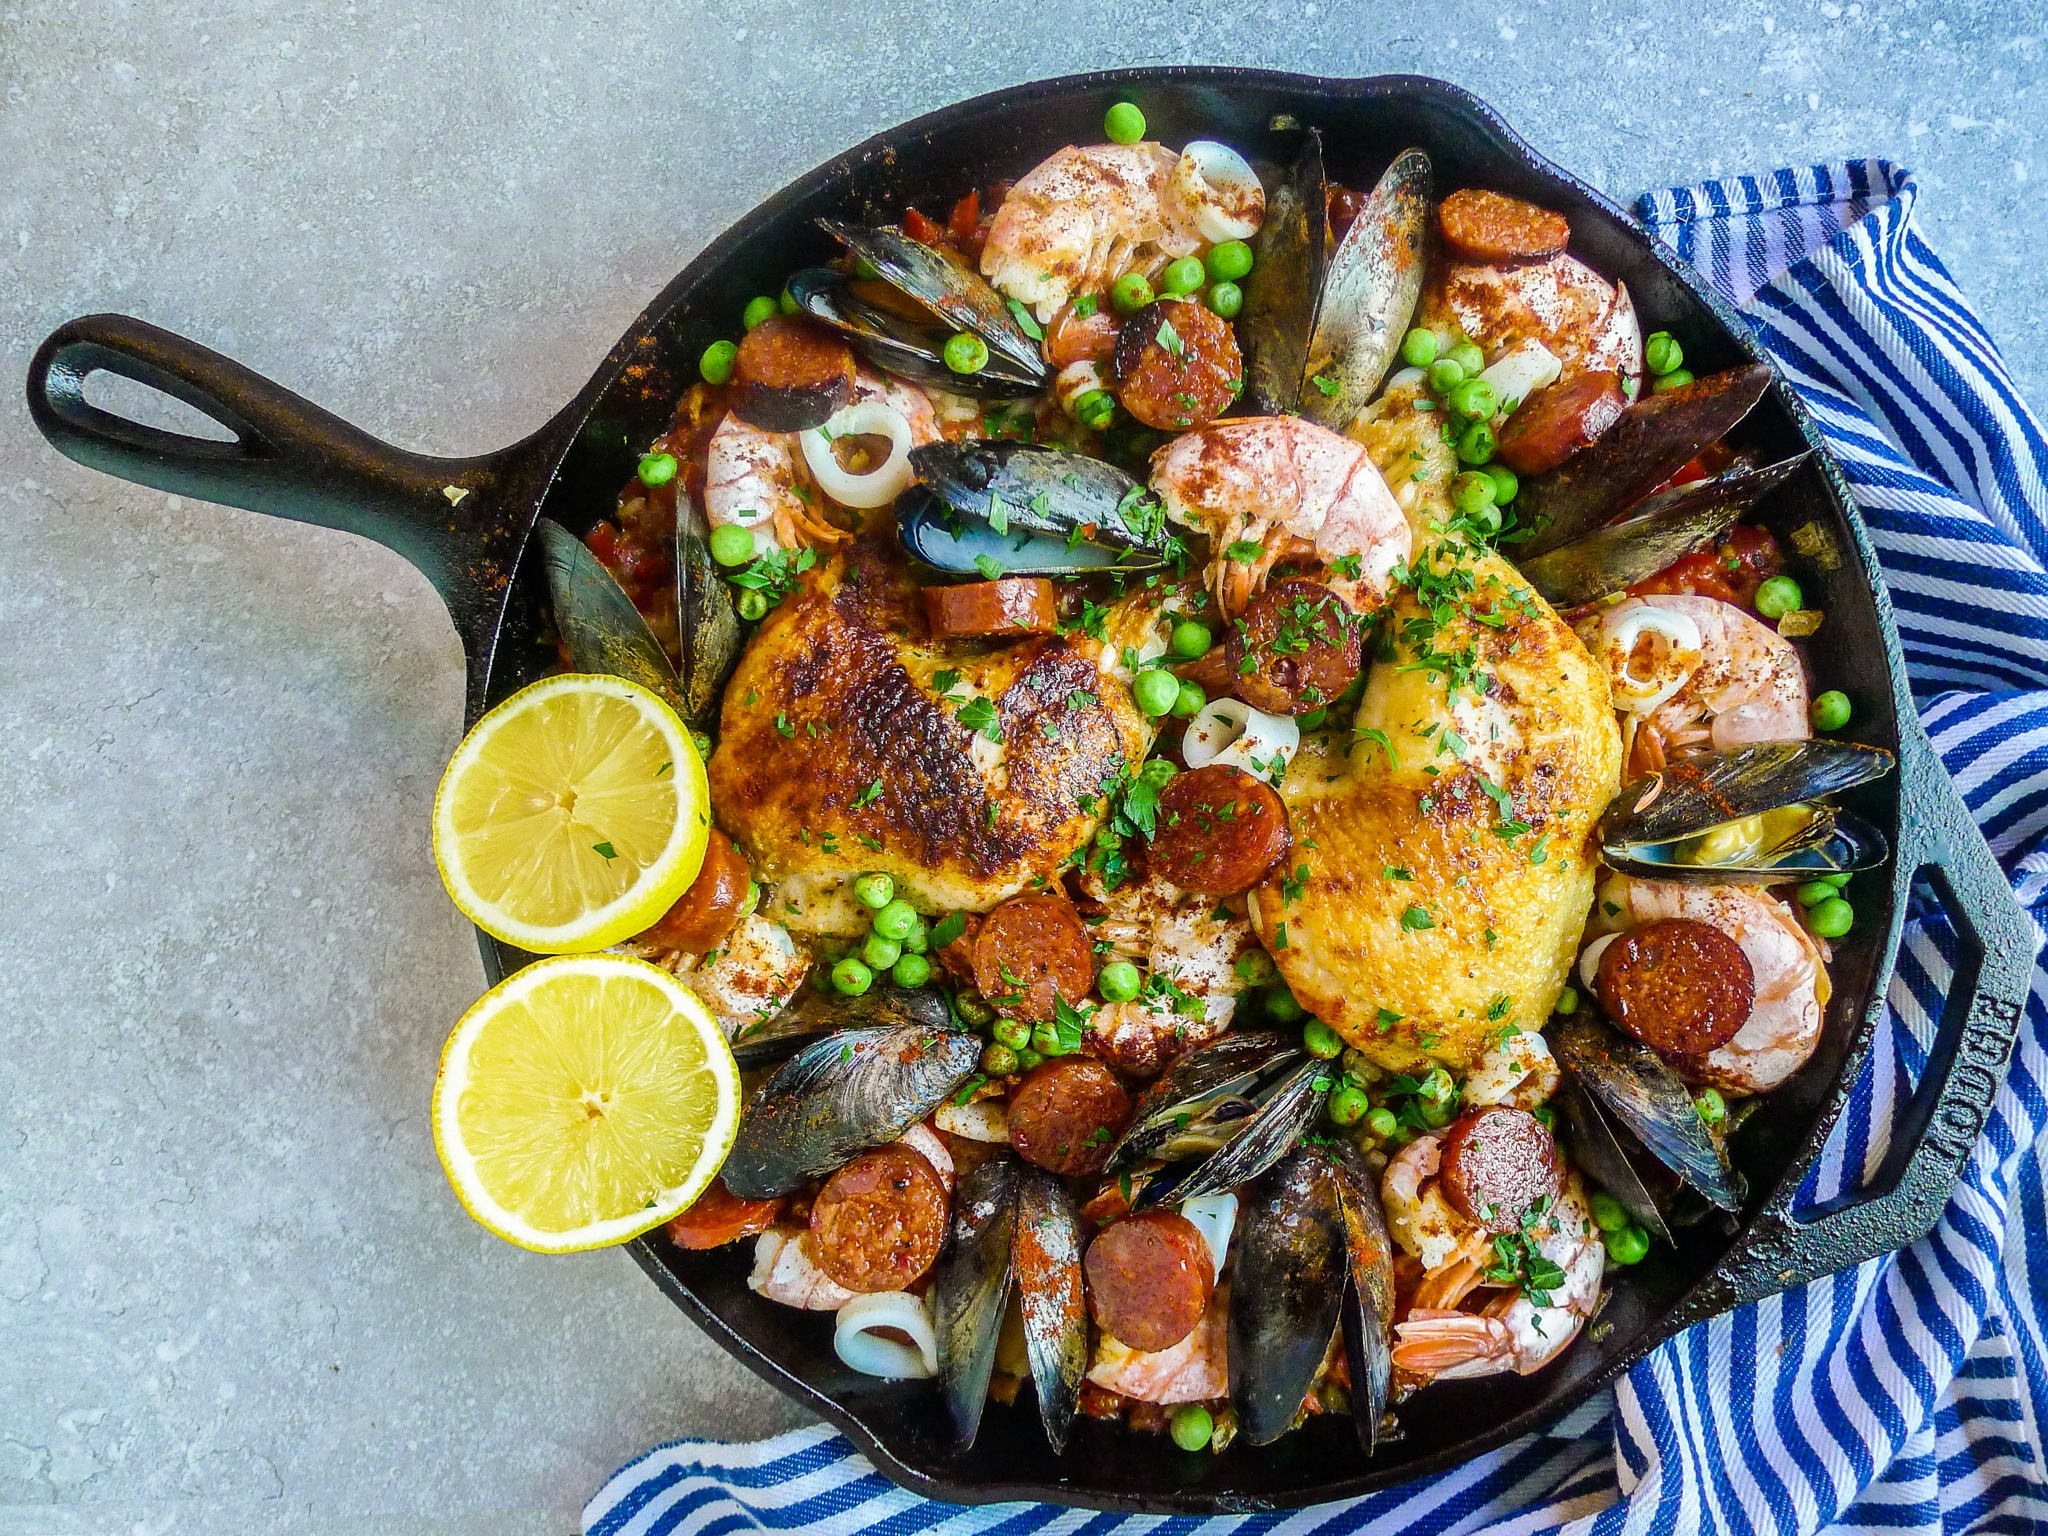 PAELLA WITH CHICKEN, CHORIZO & SEAFOOD